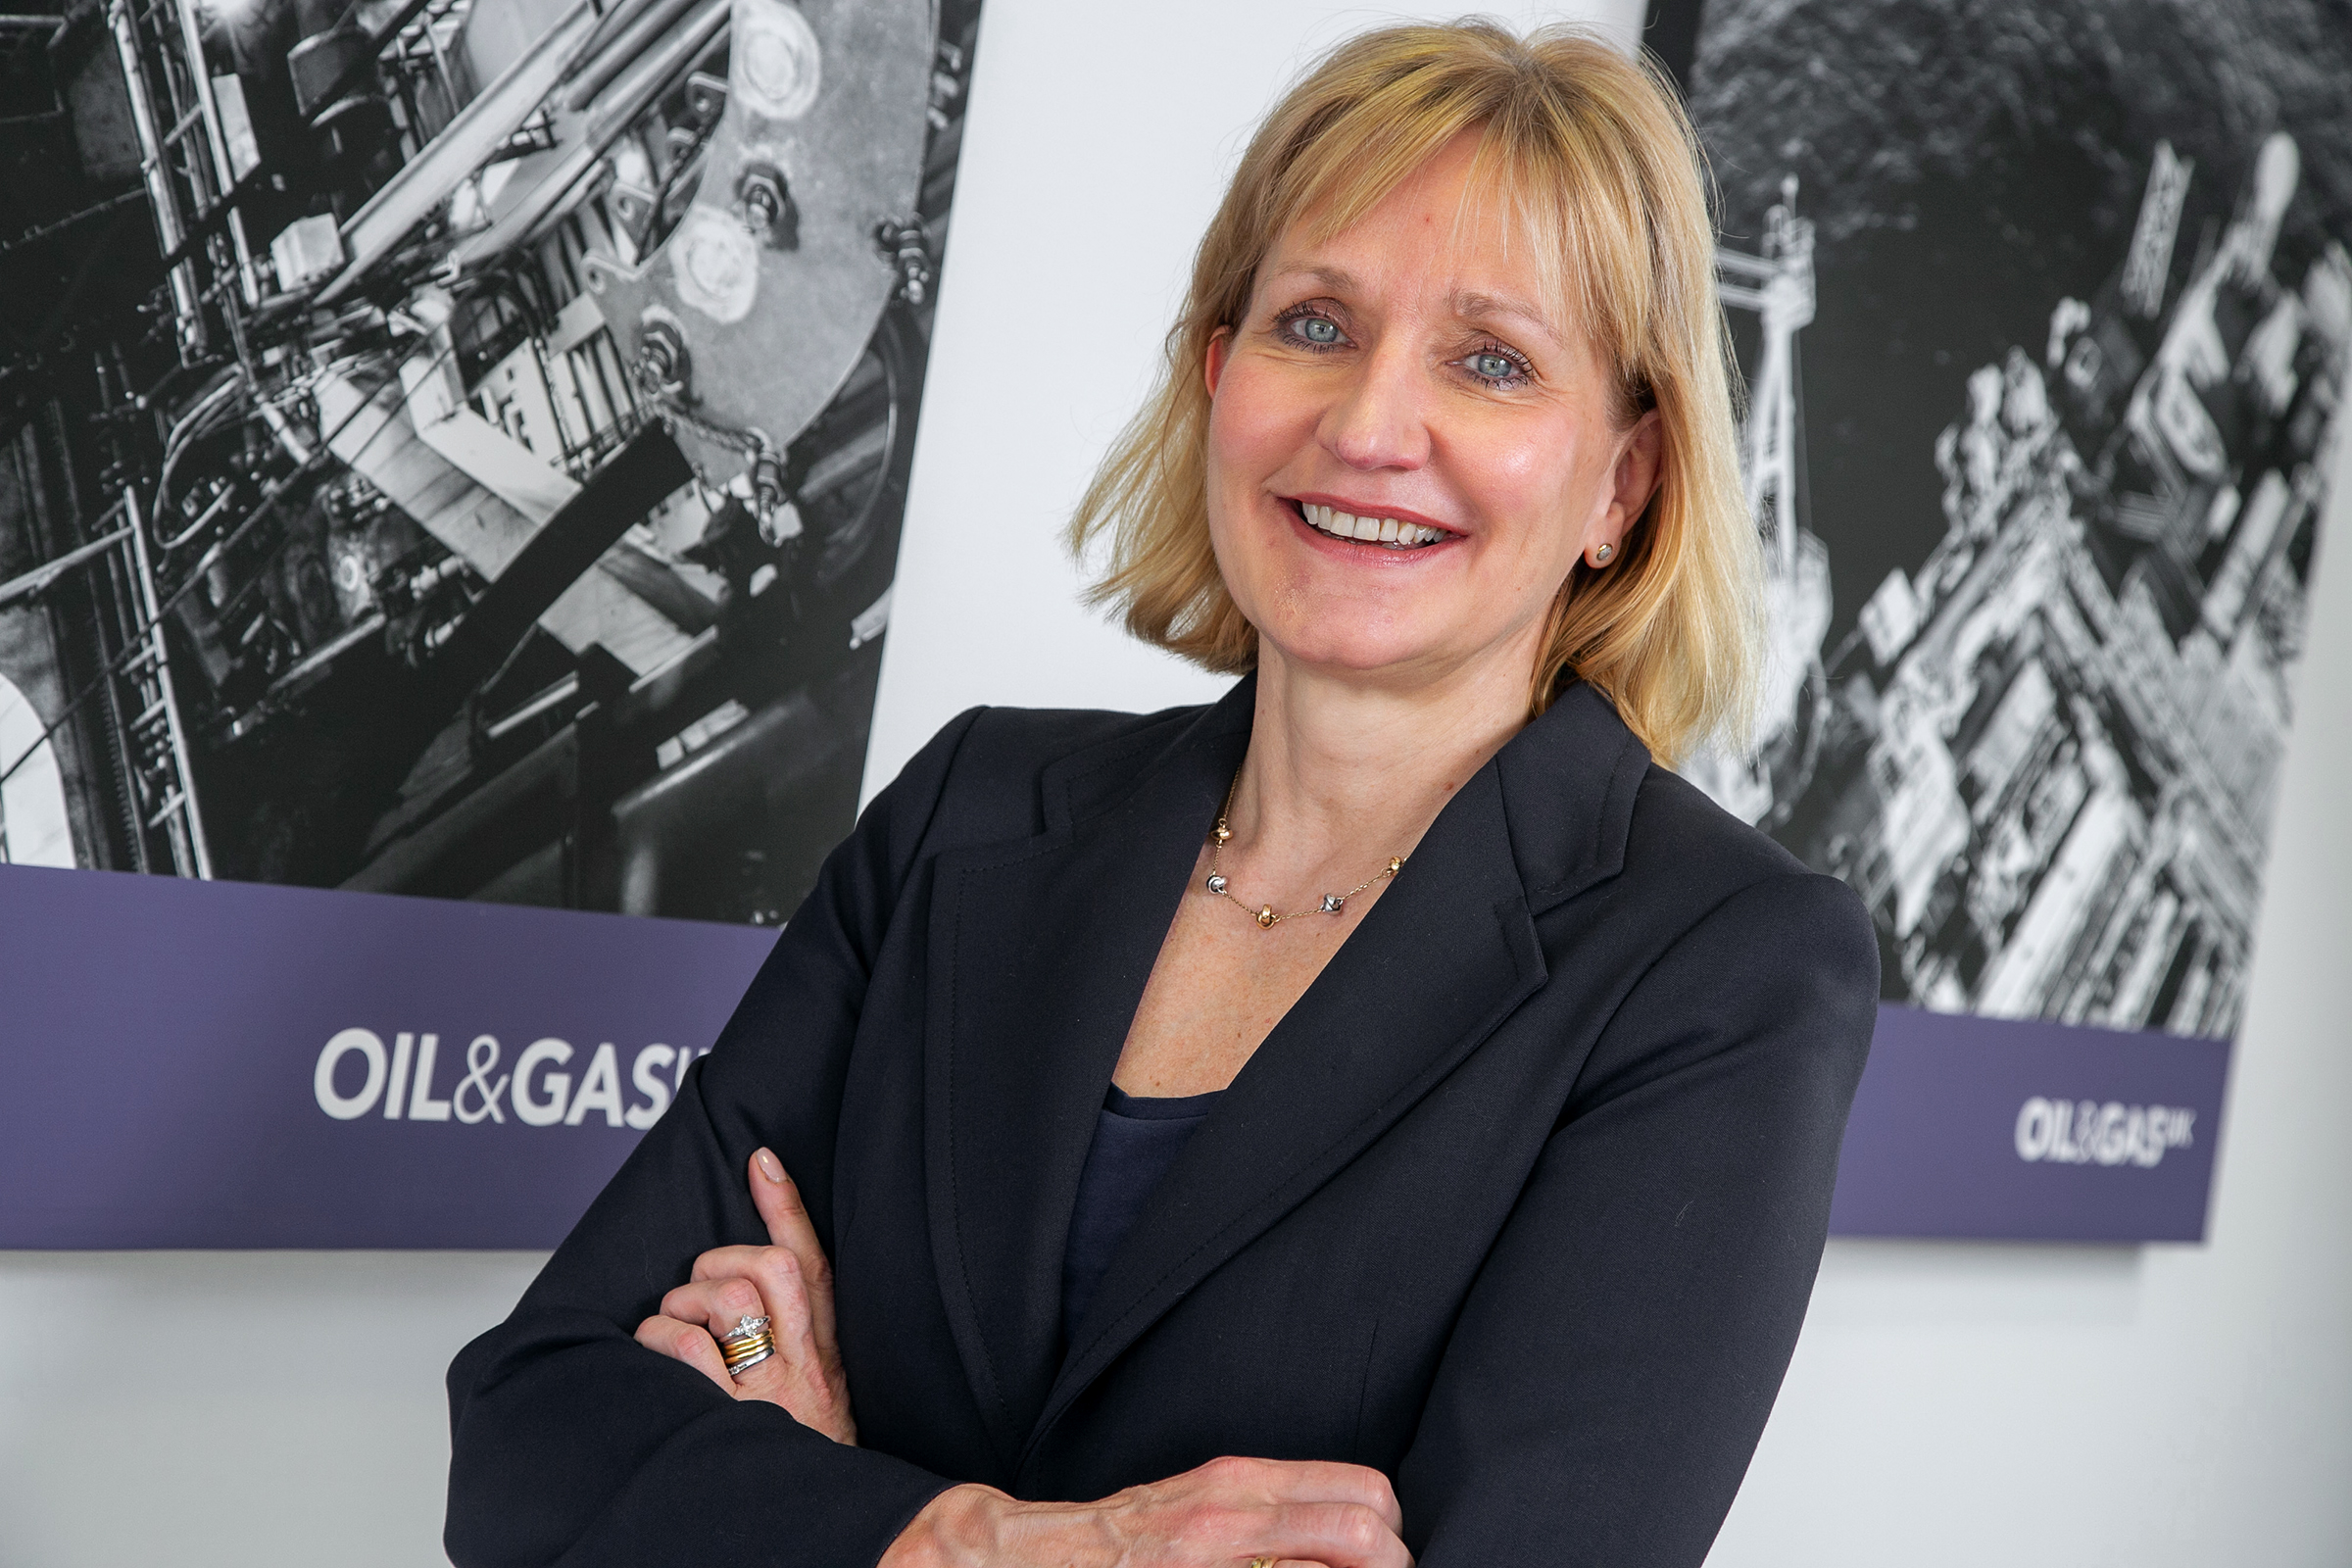 Deirdre Michie, chief executive of Oil and Gas UK